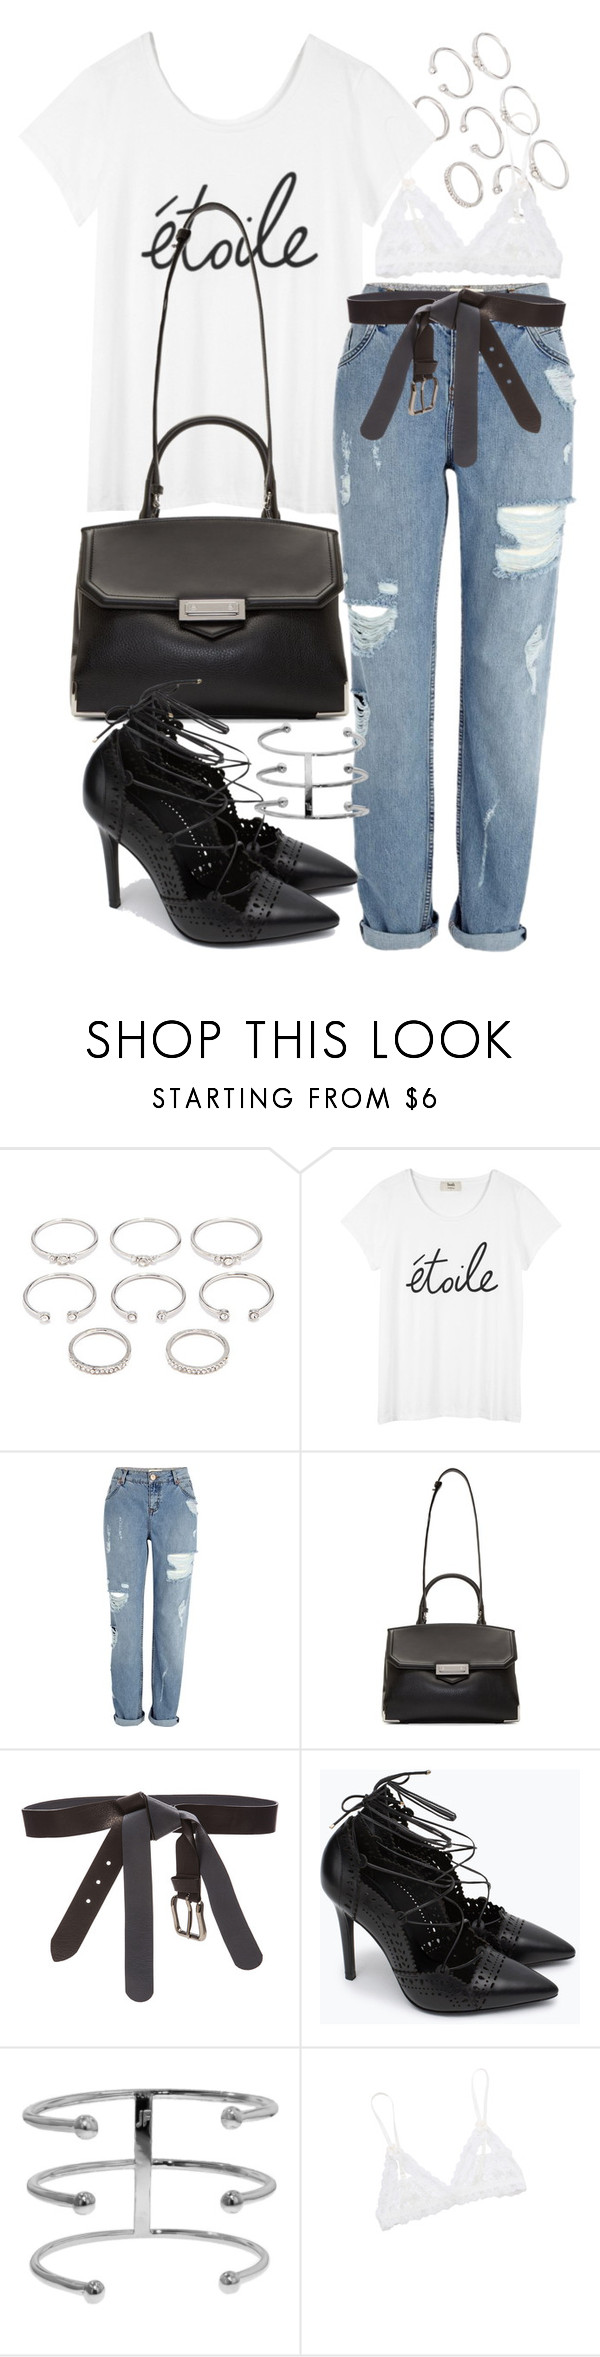 """""""Untitled #19151"""" by florencia95 ❤ liked on Polyvore featuring Forever 21, River Island, Alexander Wang, Maison Margiela, Zara and Hanky Panky"""